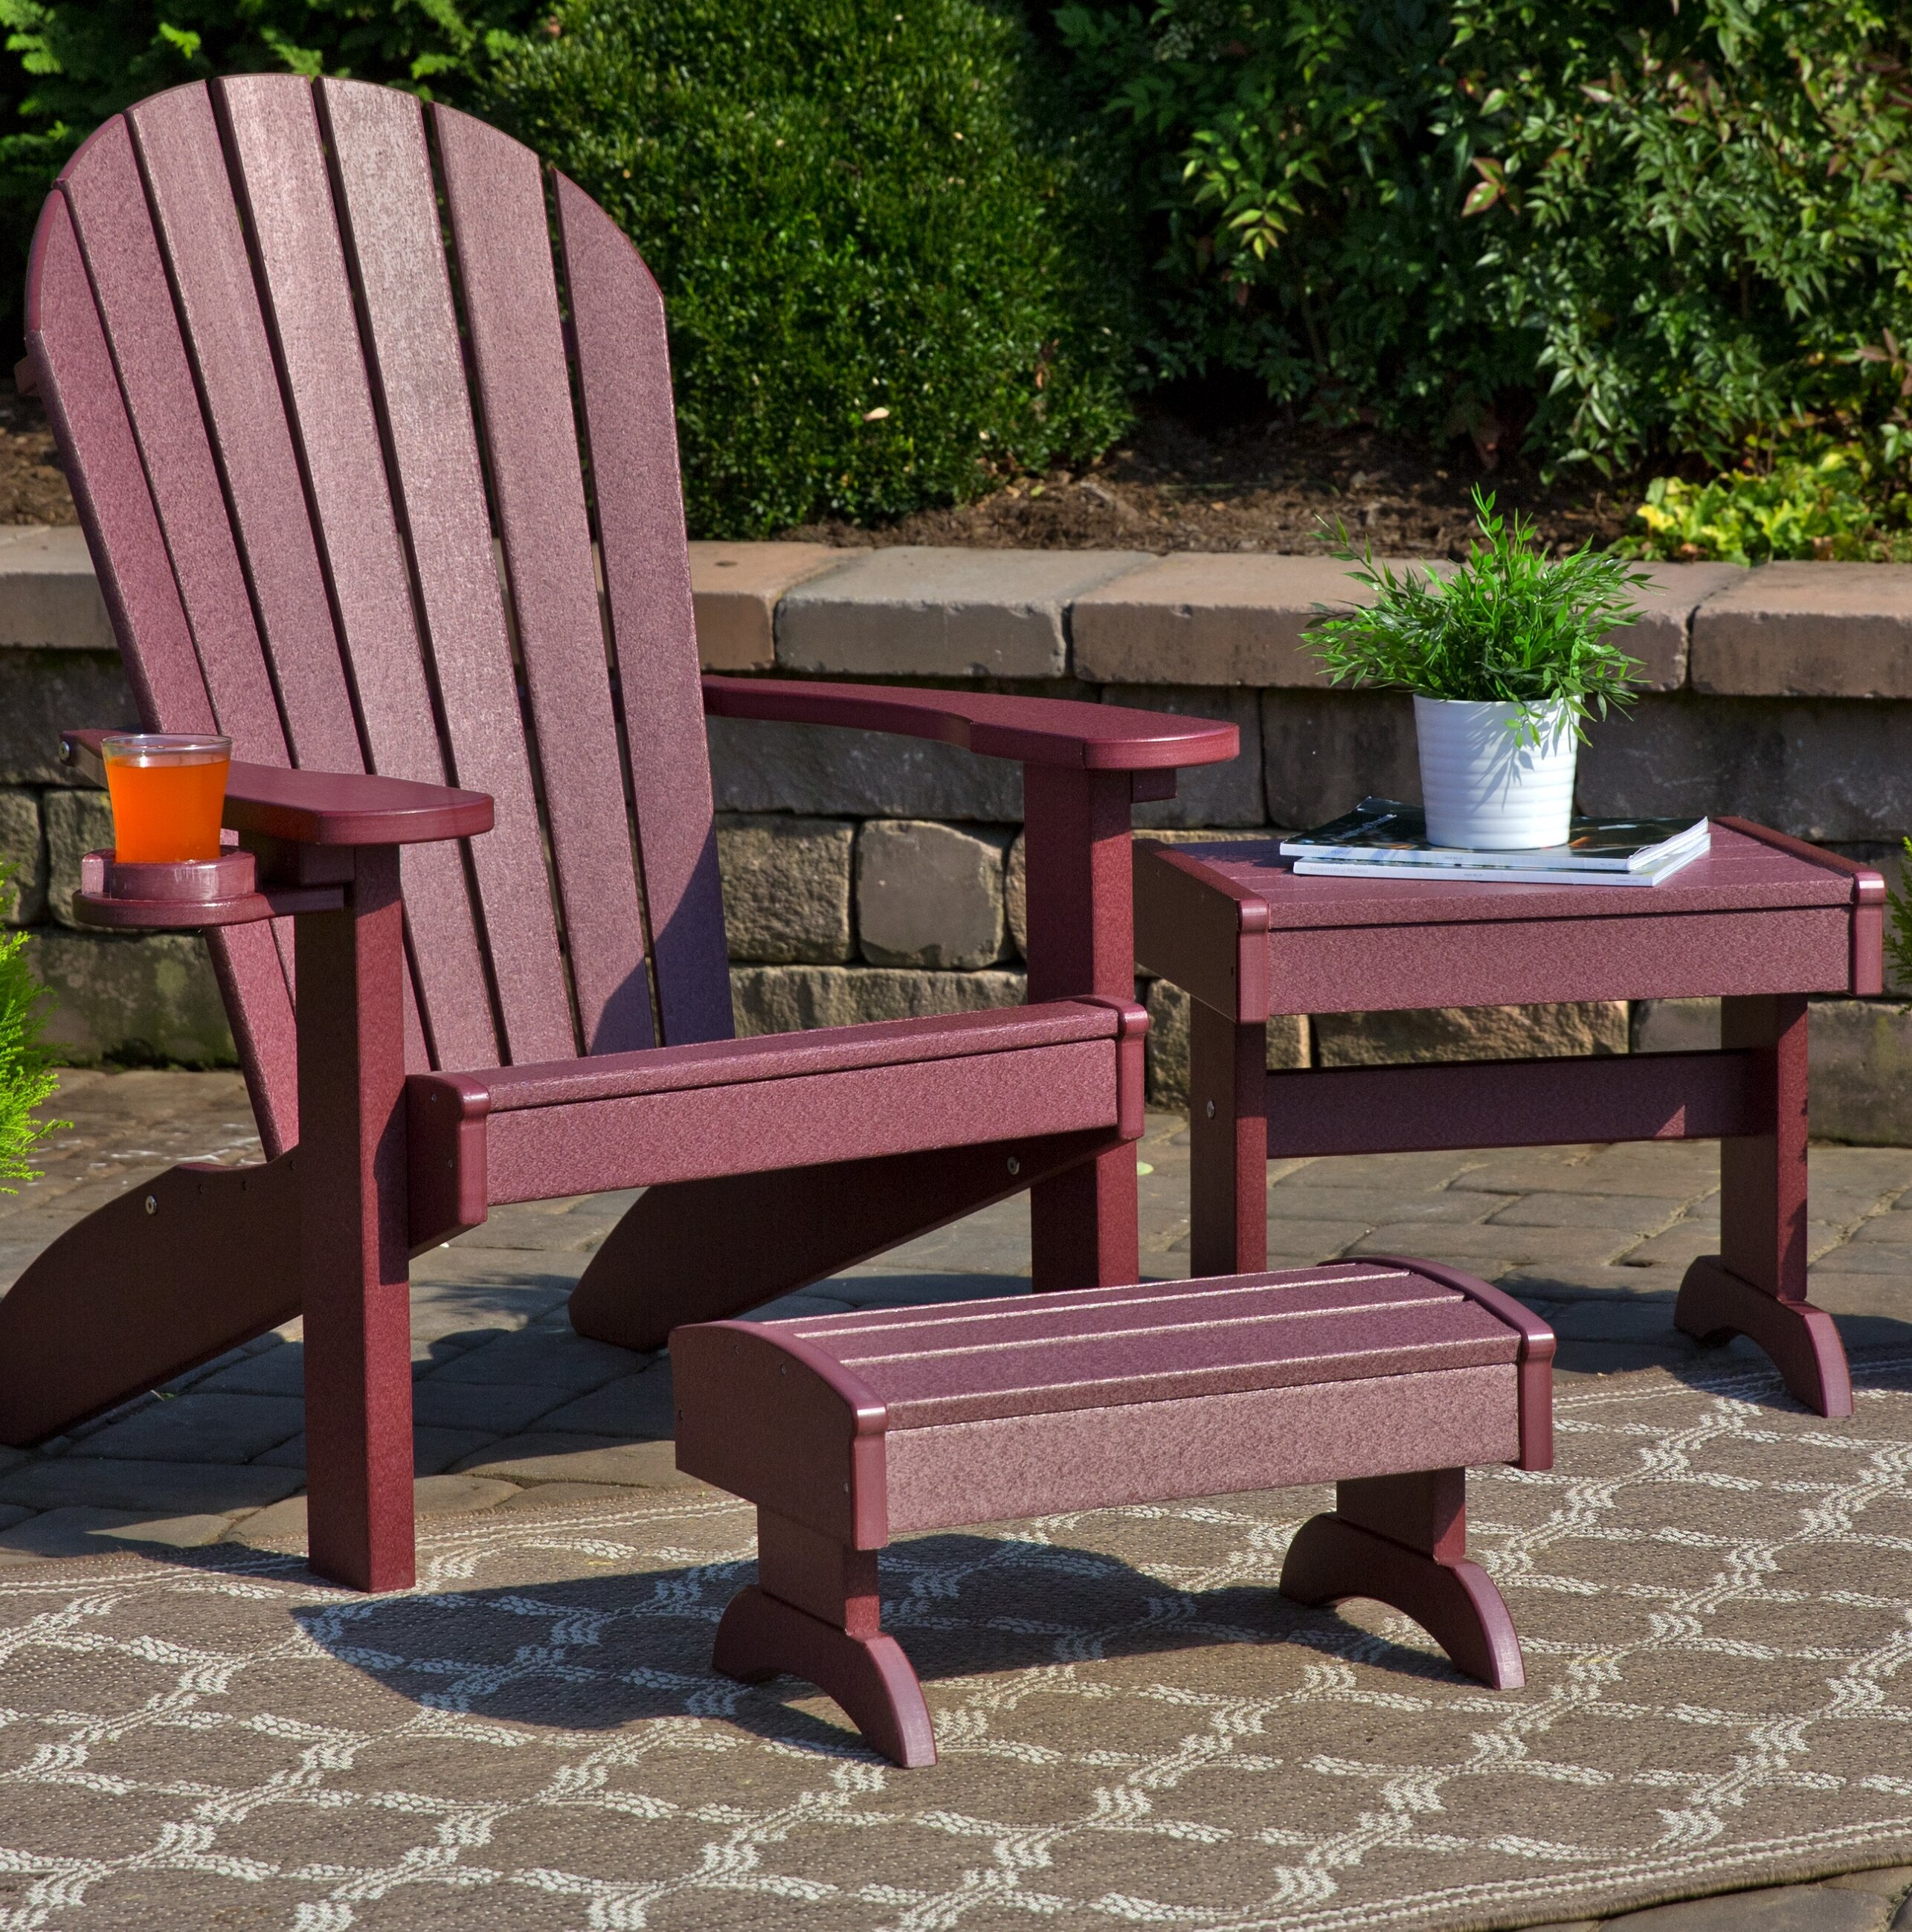 Kells 3 Piece Plastic Adirondack Chair Set With Ottoman And Table Joss Main